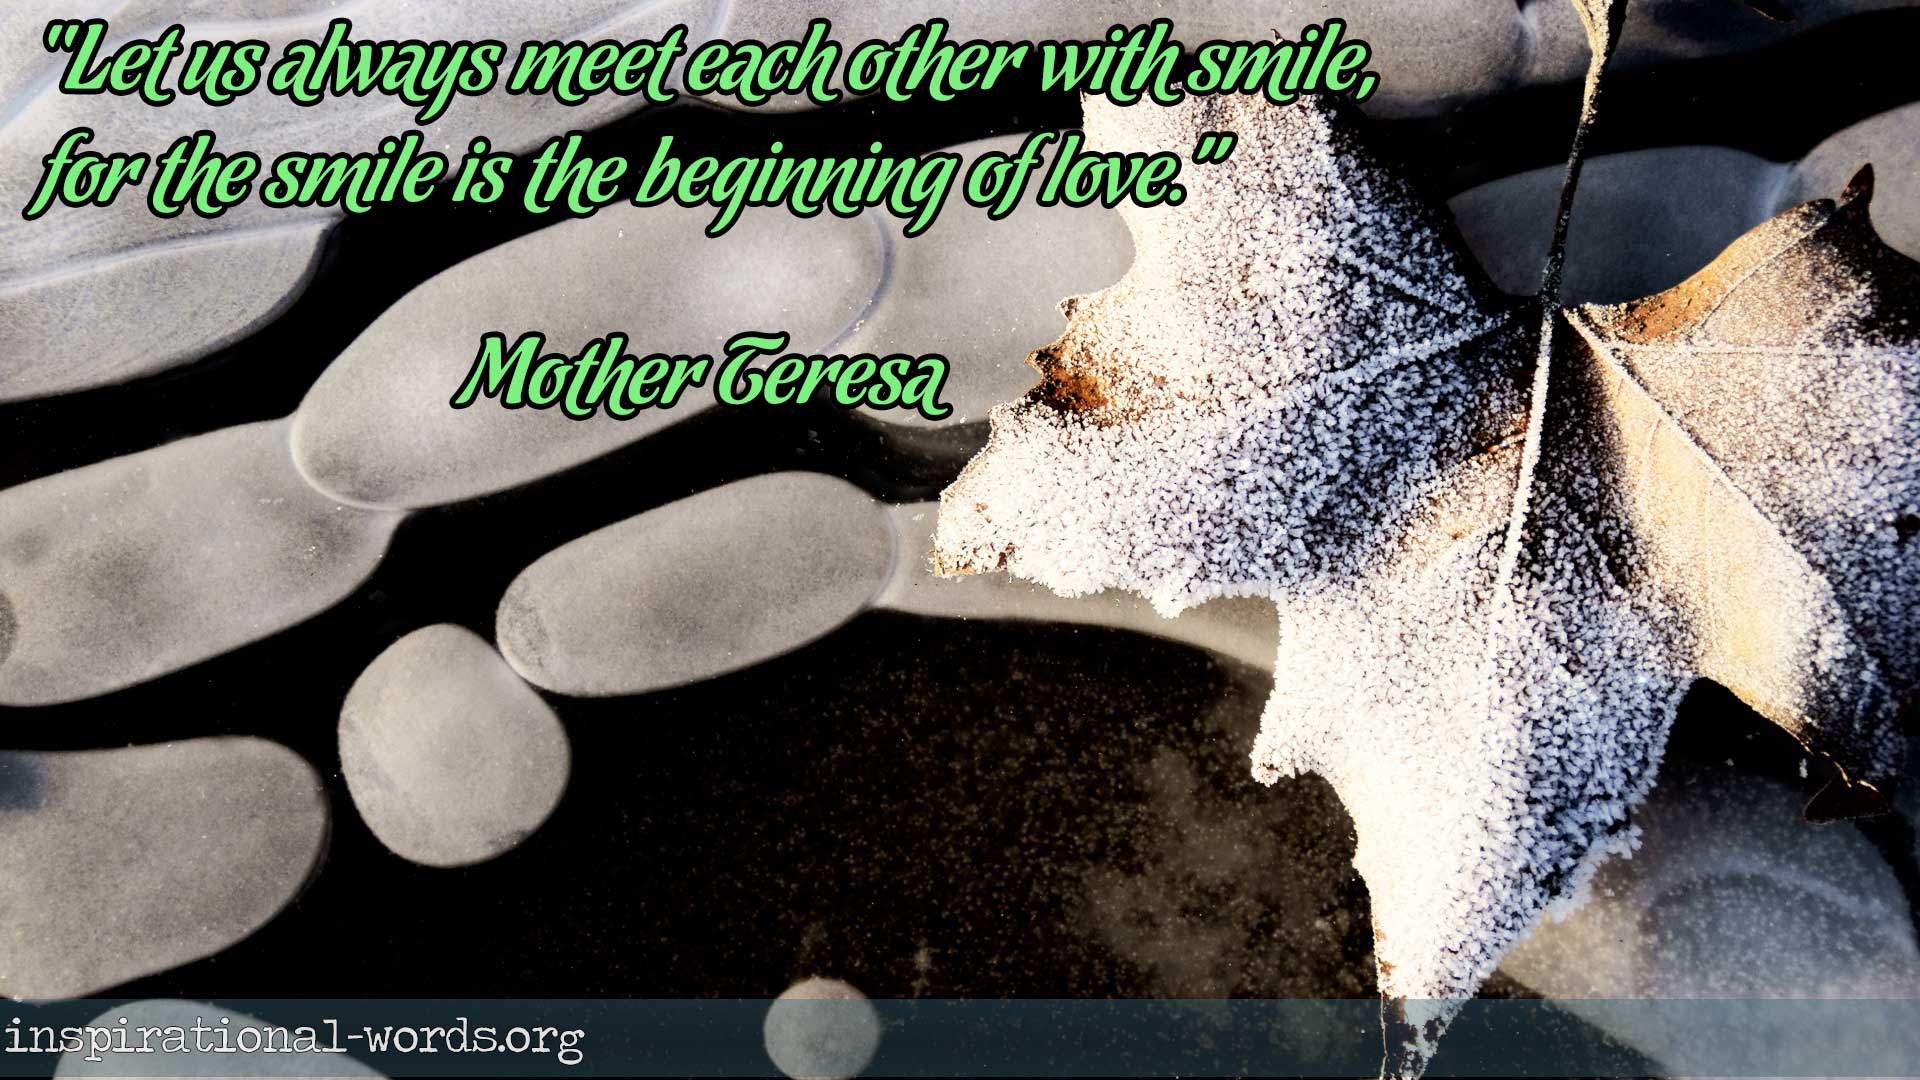 Inspirational Wallpaper Quote: Mother Teresa